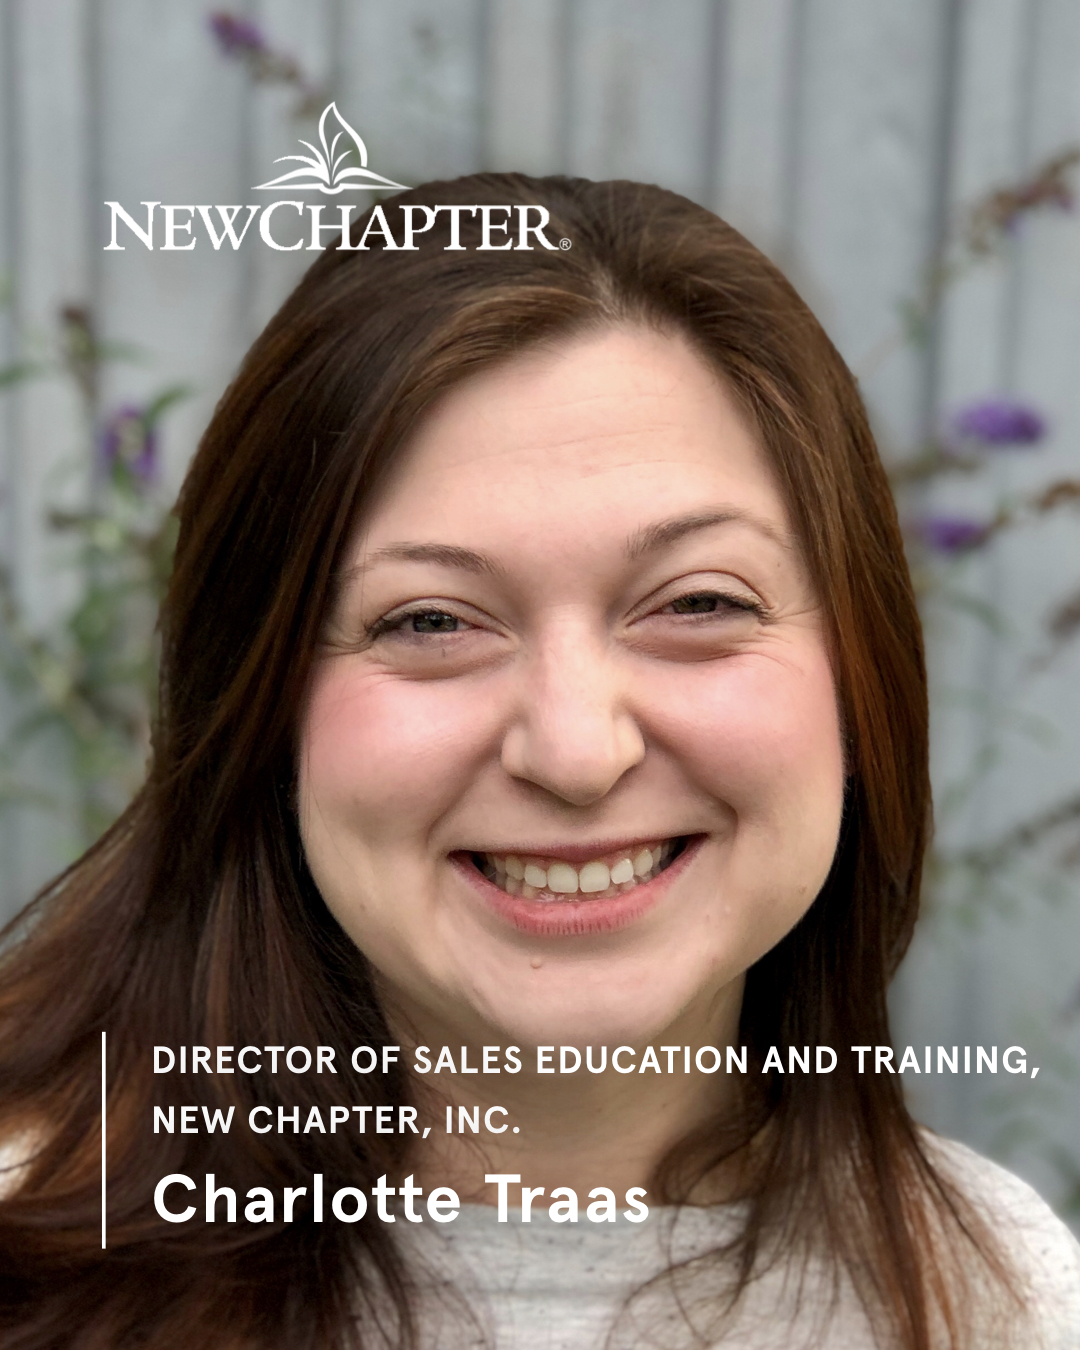 CharlotteTraas_NewChapter_West 2019 - Headshots.001.jpeg